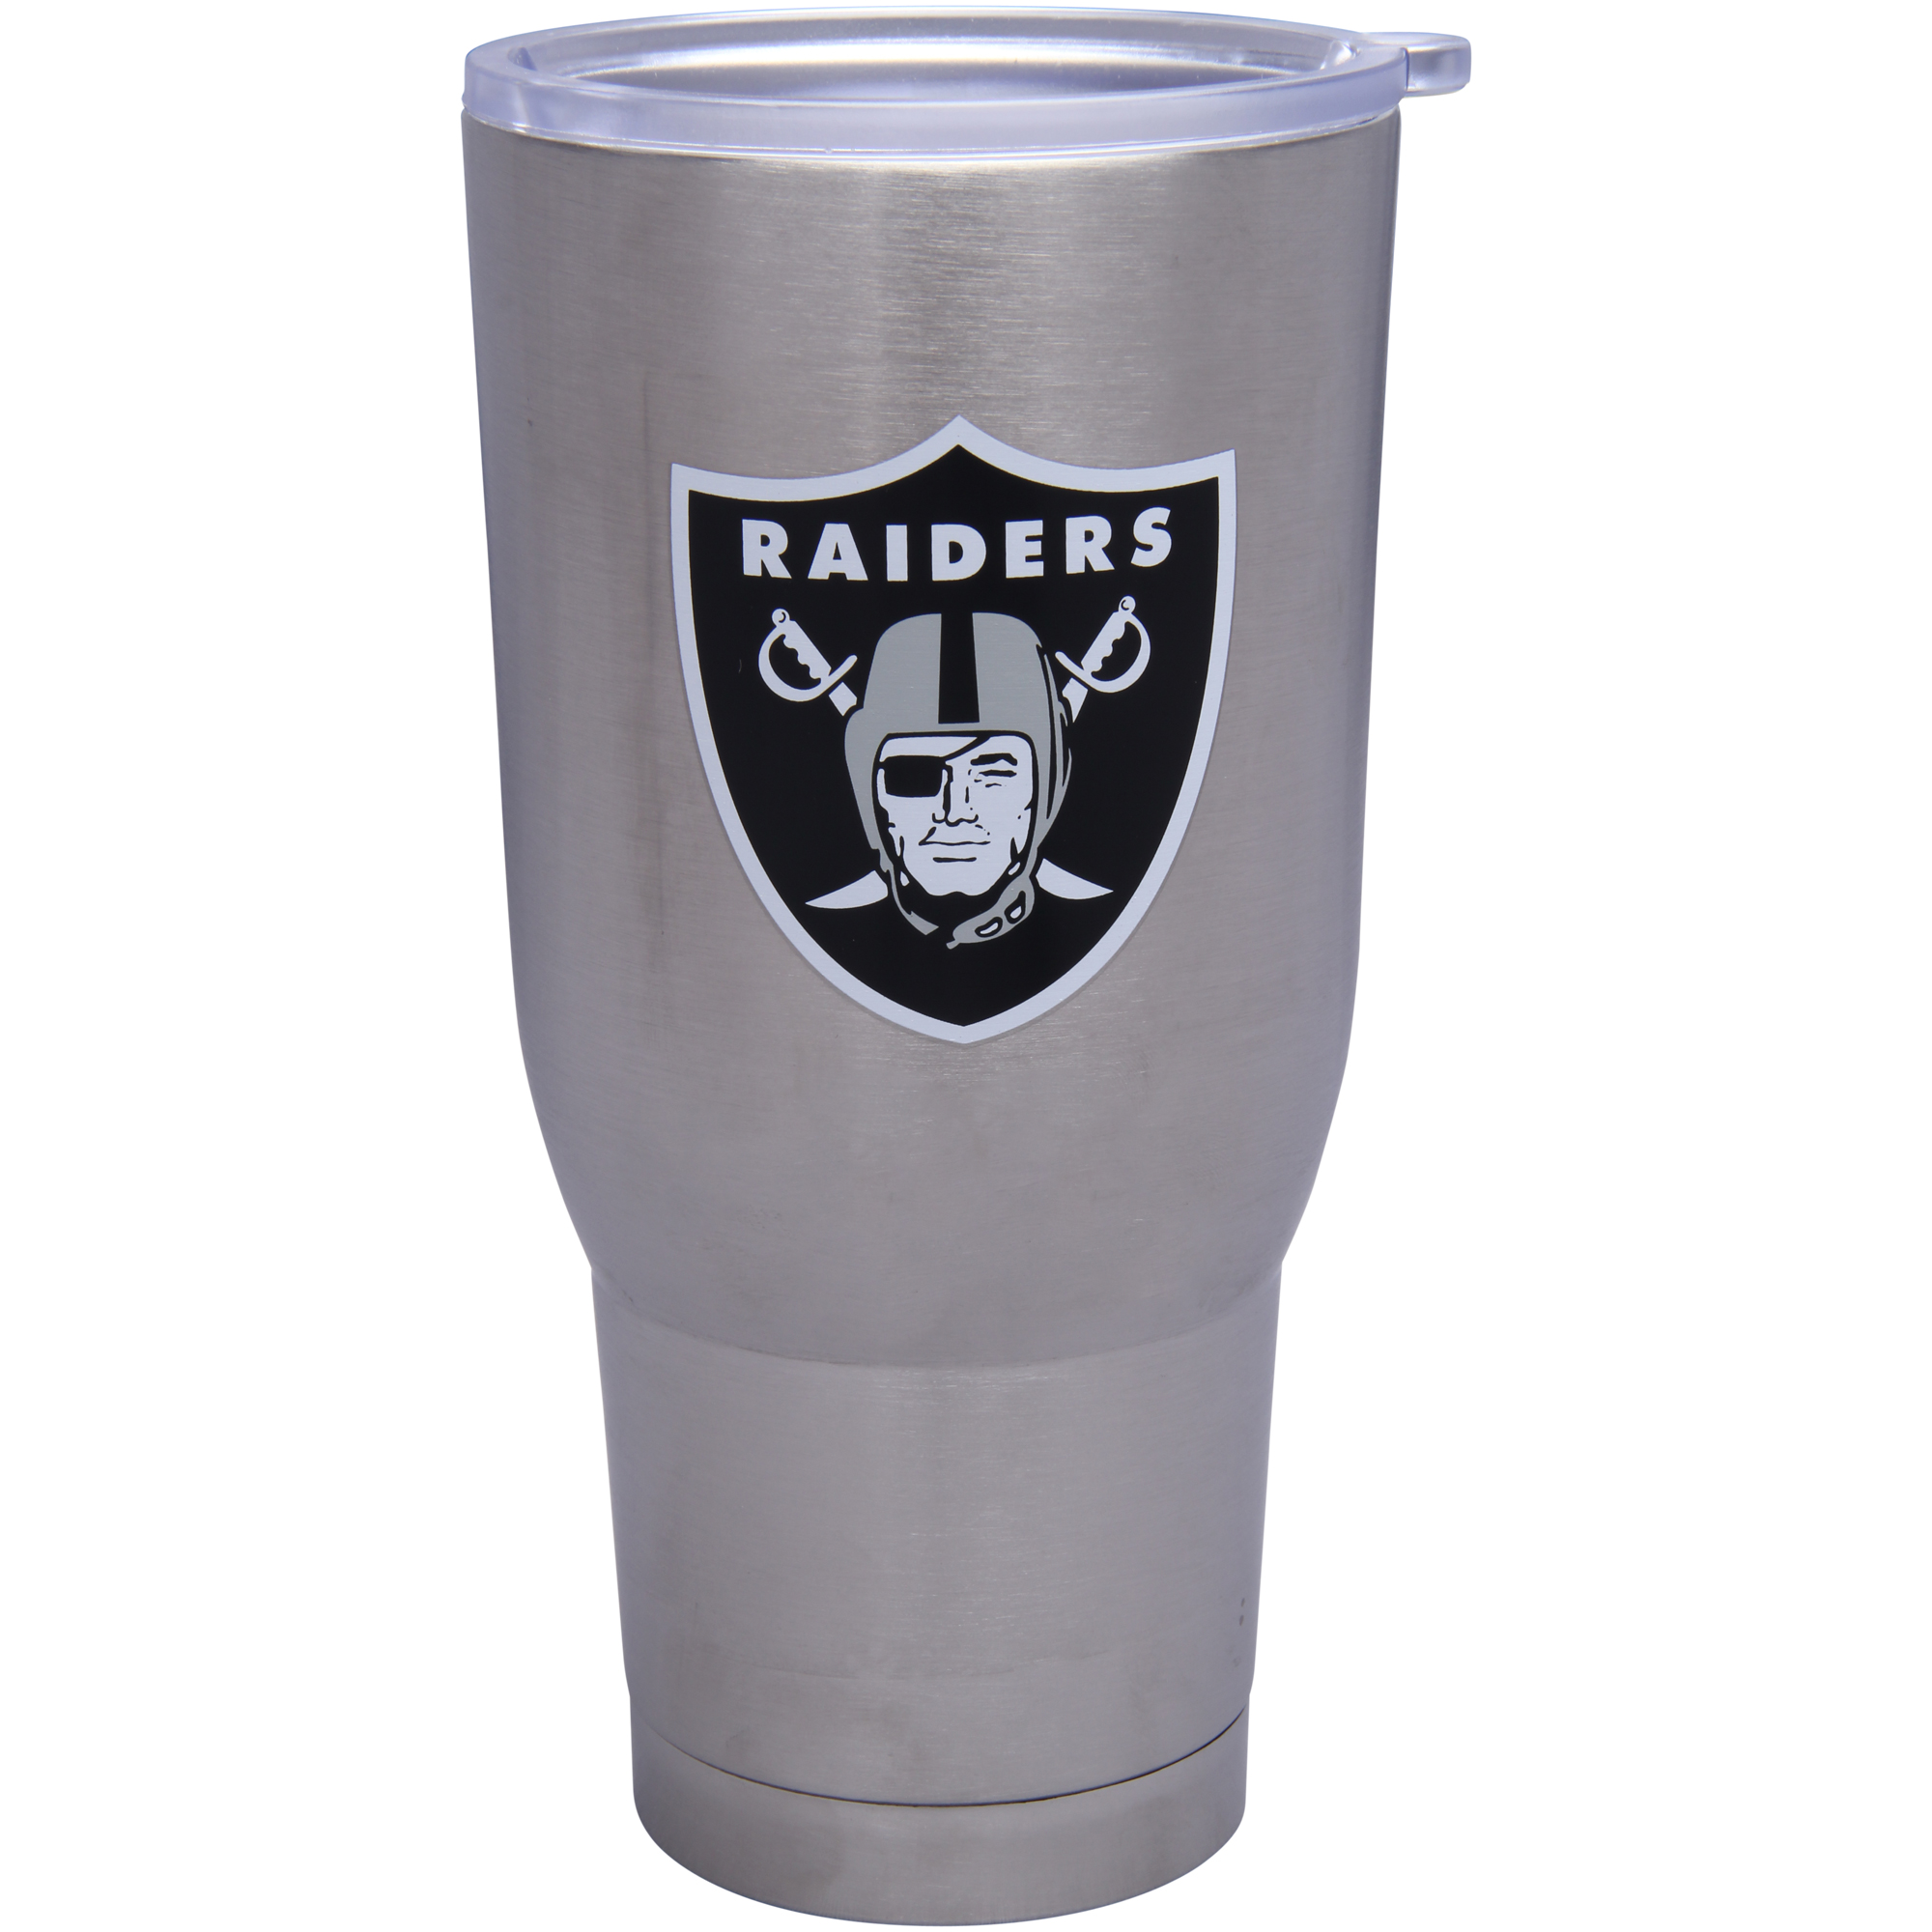 Oakland Raiders 32oz. Stainless Steel Keeper Tumbler - No Size